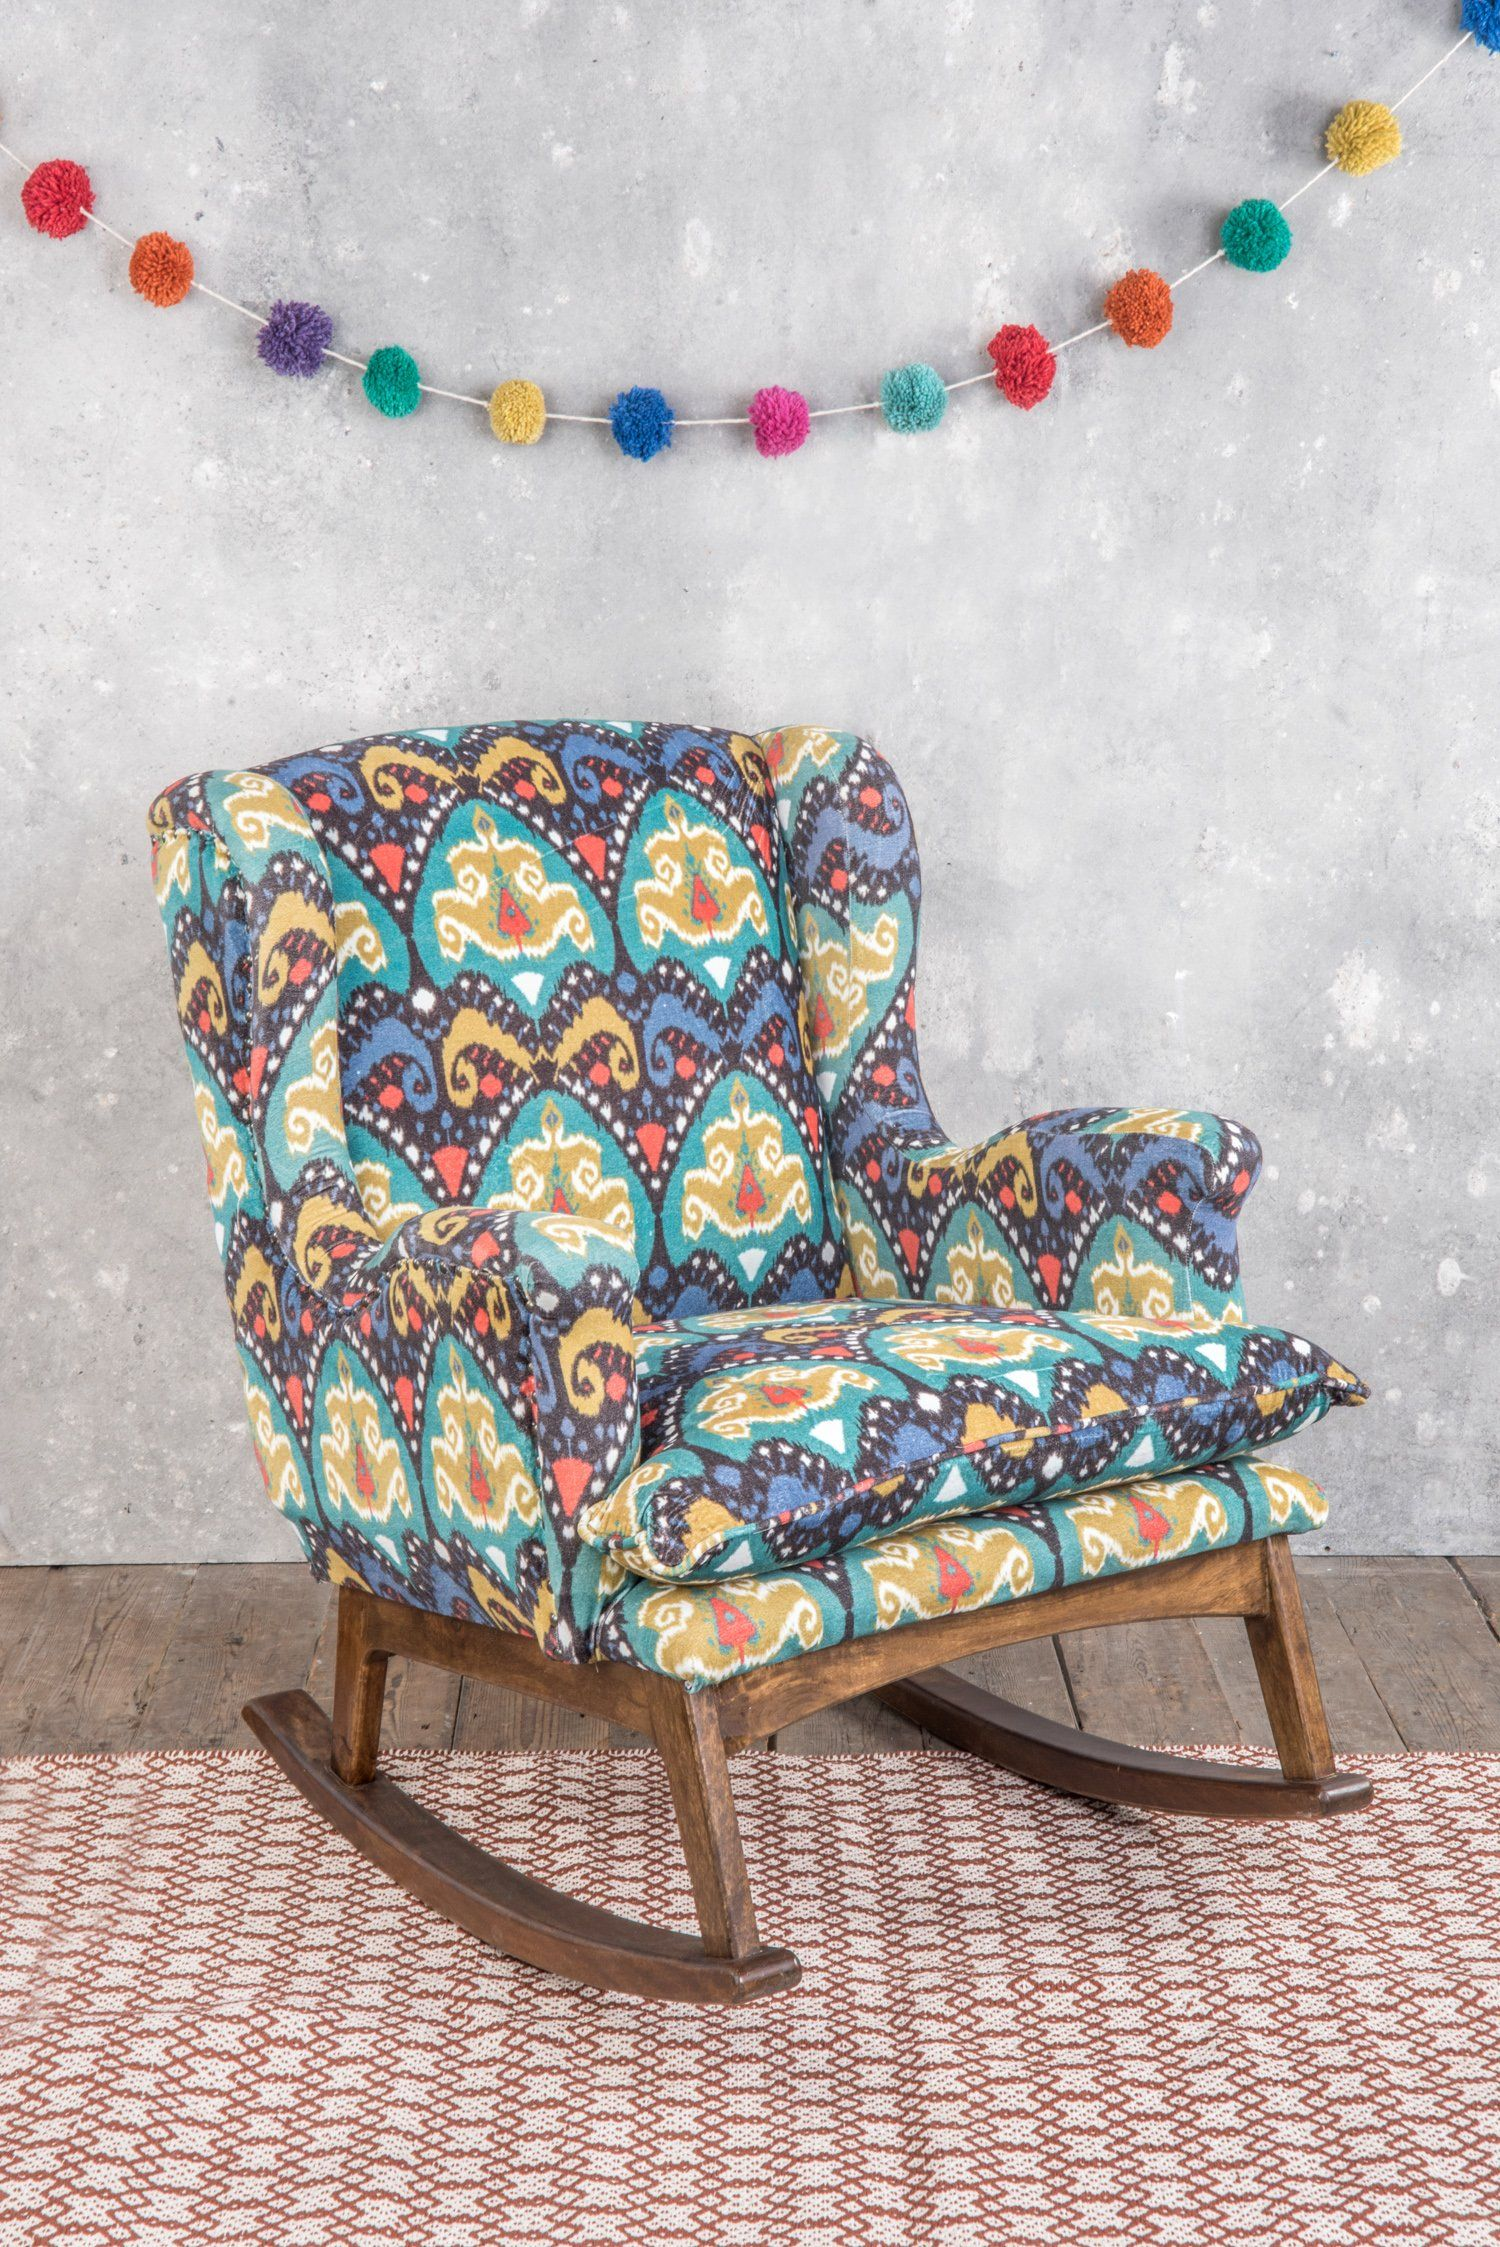 Terrific Patterned Velvet Rocking Chair I Love I Want In My Creativecarmelina Interior Chair Design Creativecarmelinacom